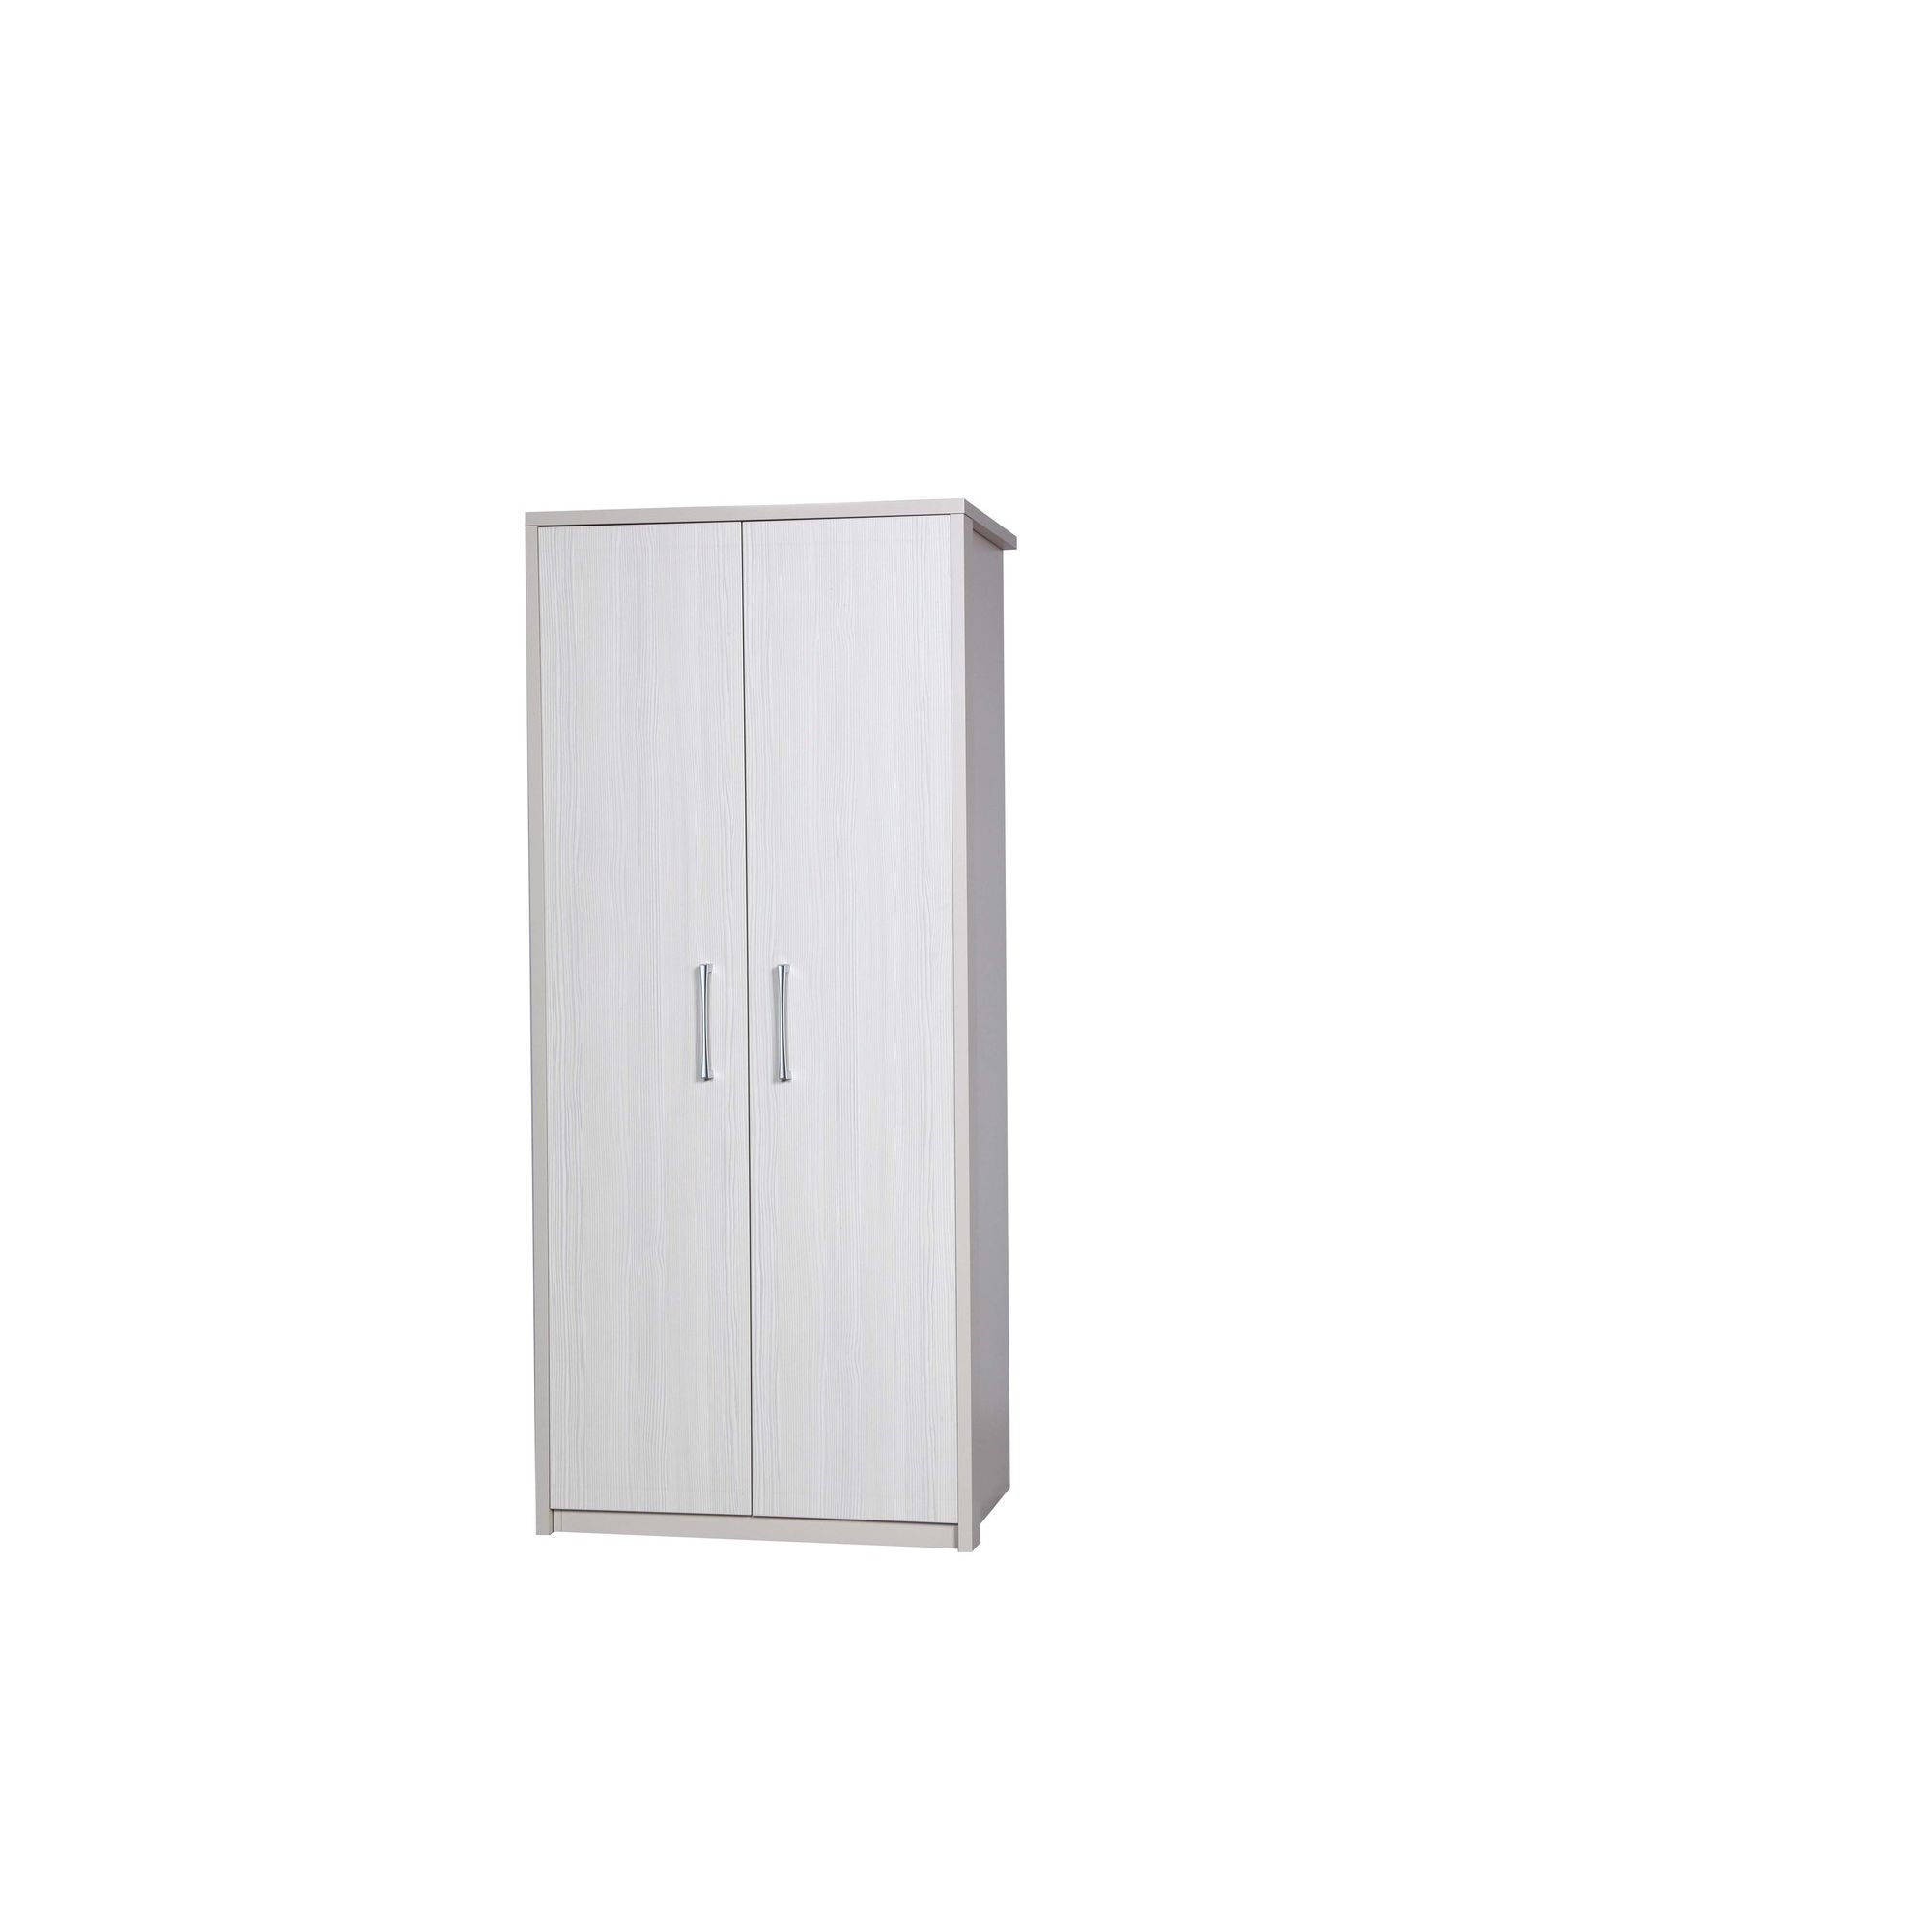 Alto Furniture Avola Double Wardrobe - Cream Carcass With White Avola at Tesco Direct